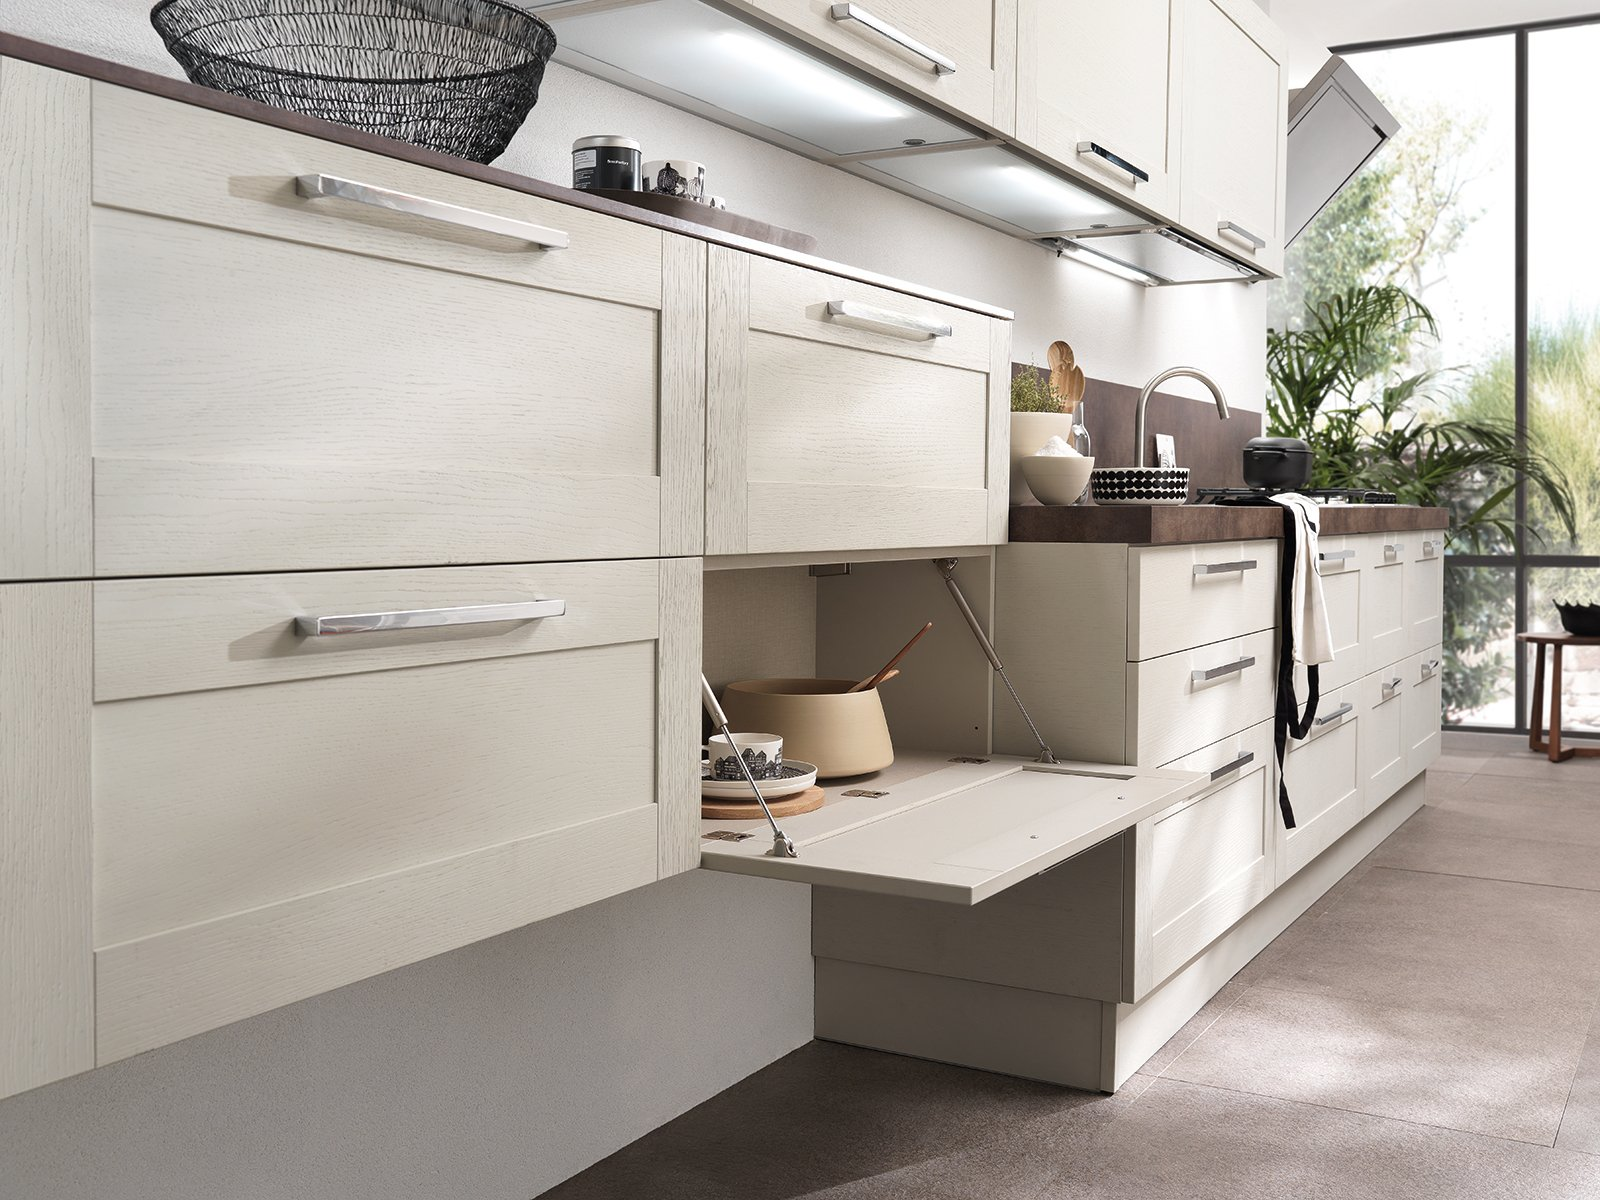 Cucine ben attrezzate all 39 interno cose di casa for Programma per comporre cucine